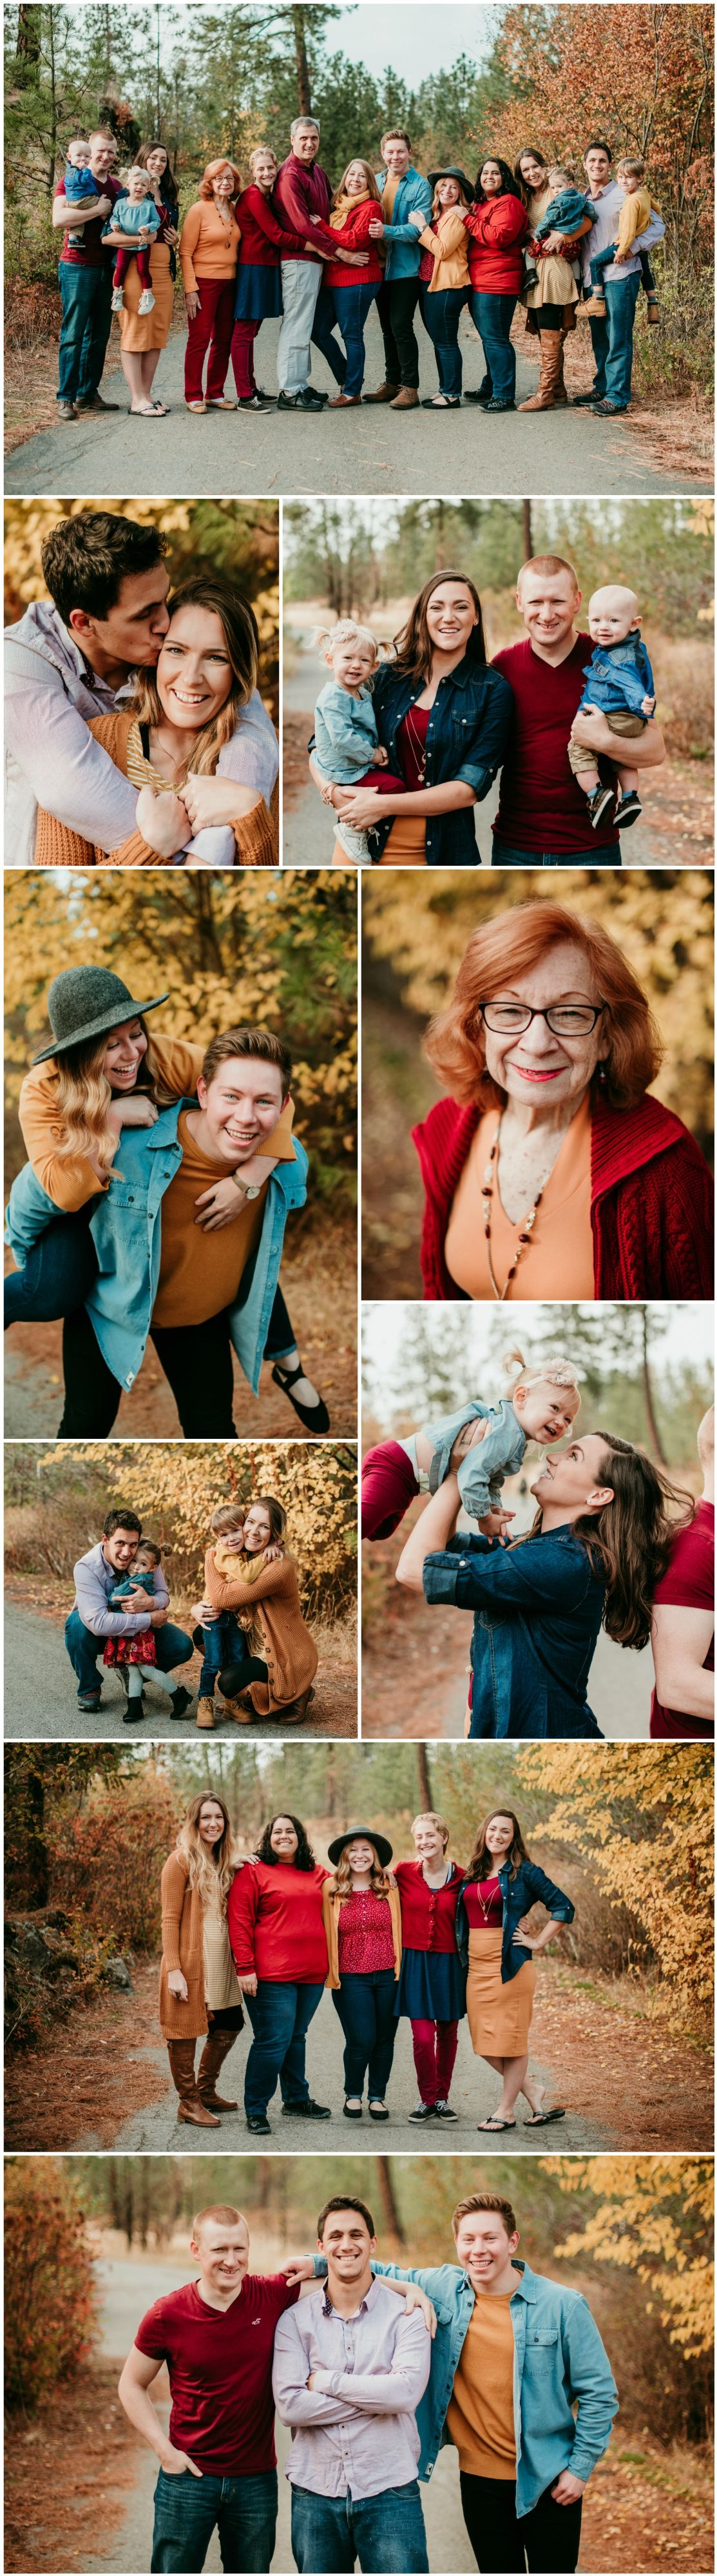 Extended Family Session in Post Falls, Idaho with a Family of 15 #extendedfamilyphotography